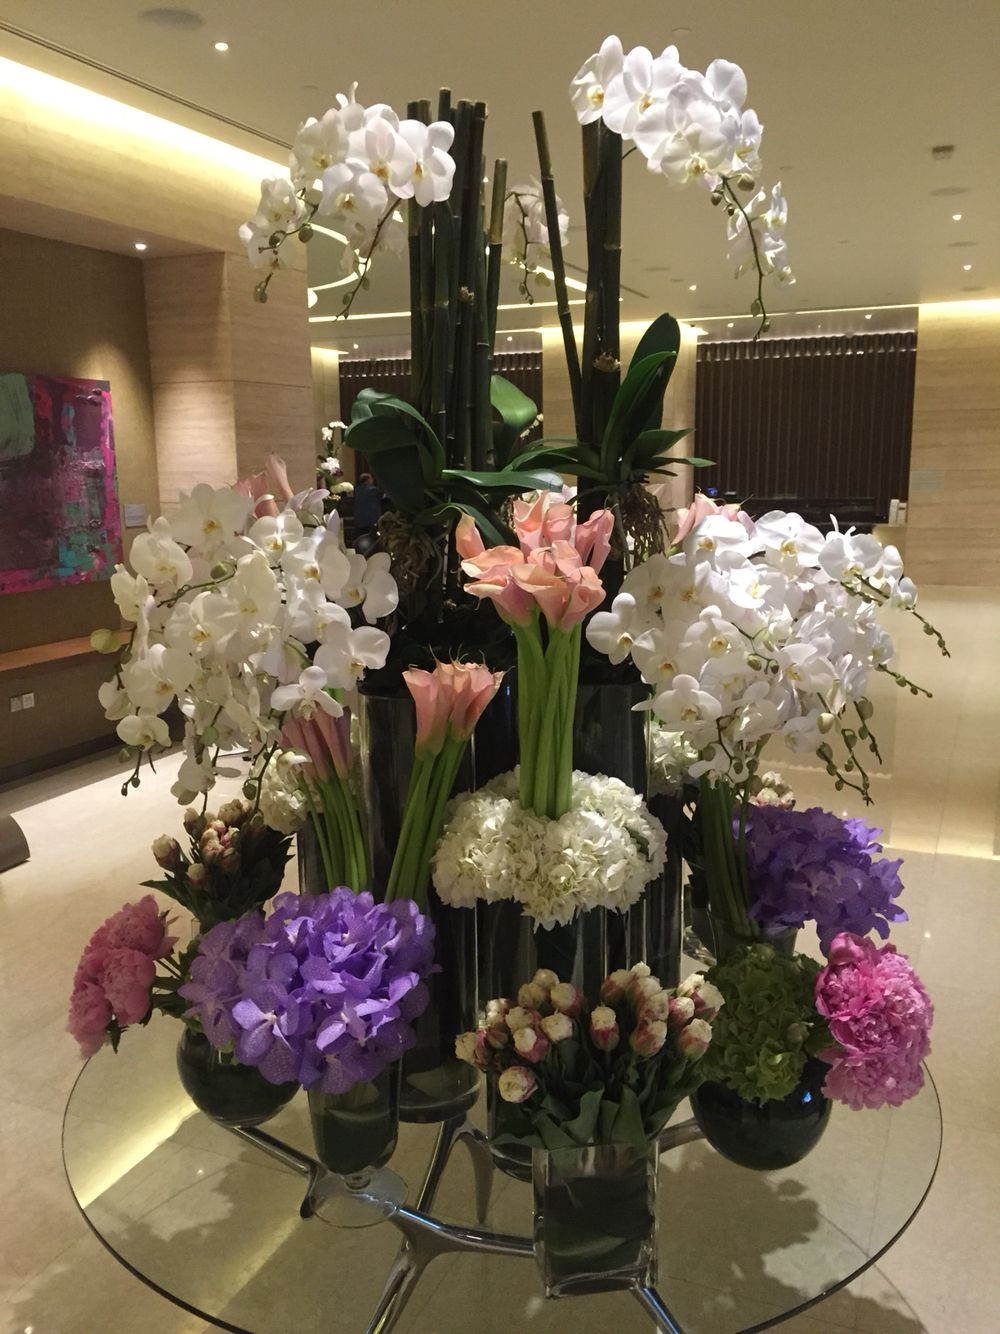 A Creation For One Farrer Hotel Spa Singapore Floral Arrangements Calla Lillies Calla Lily